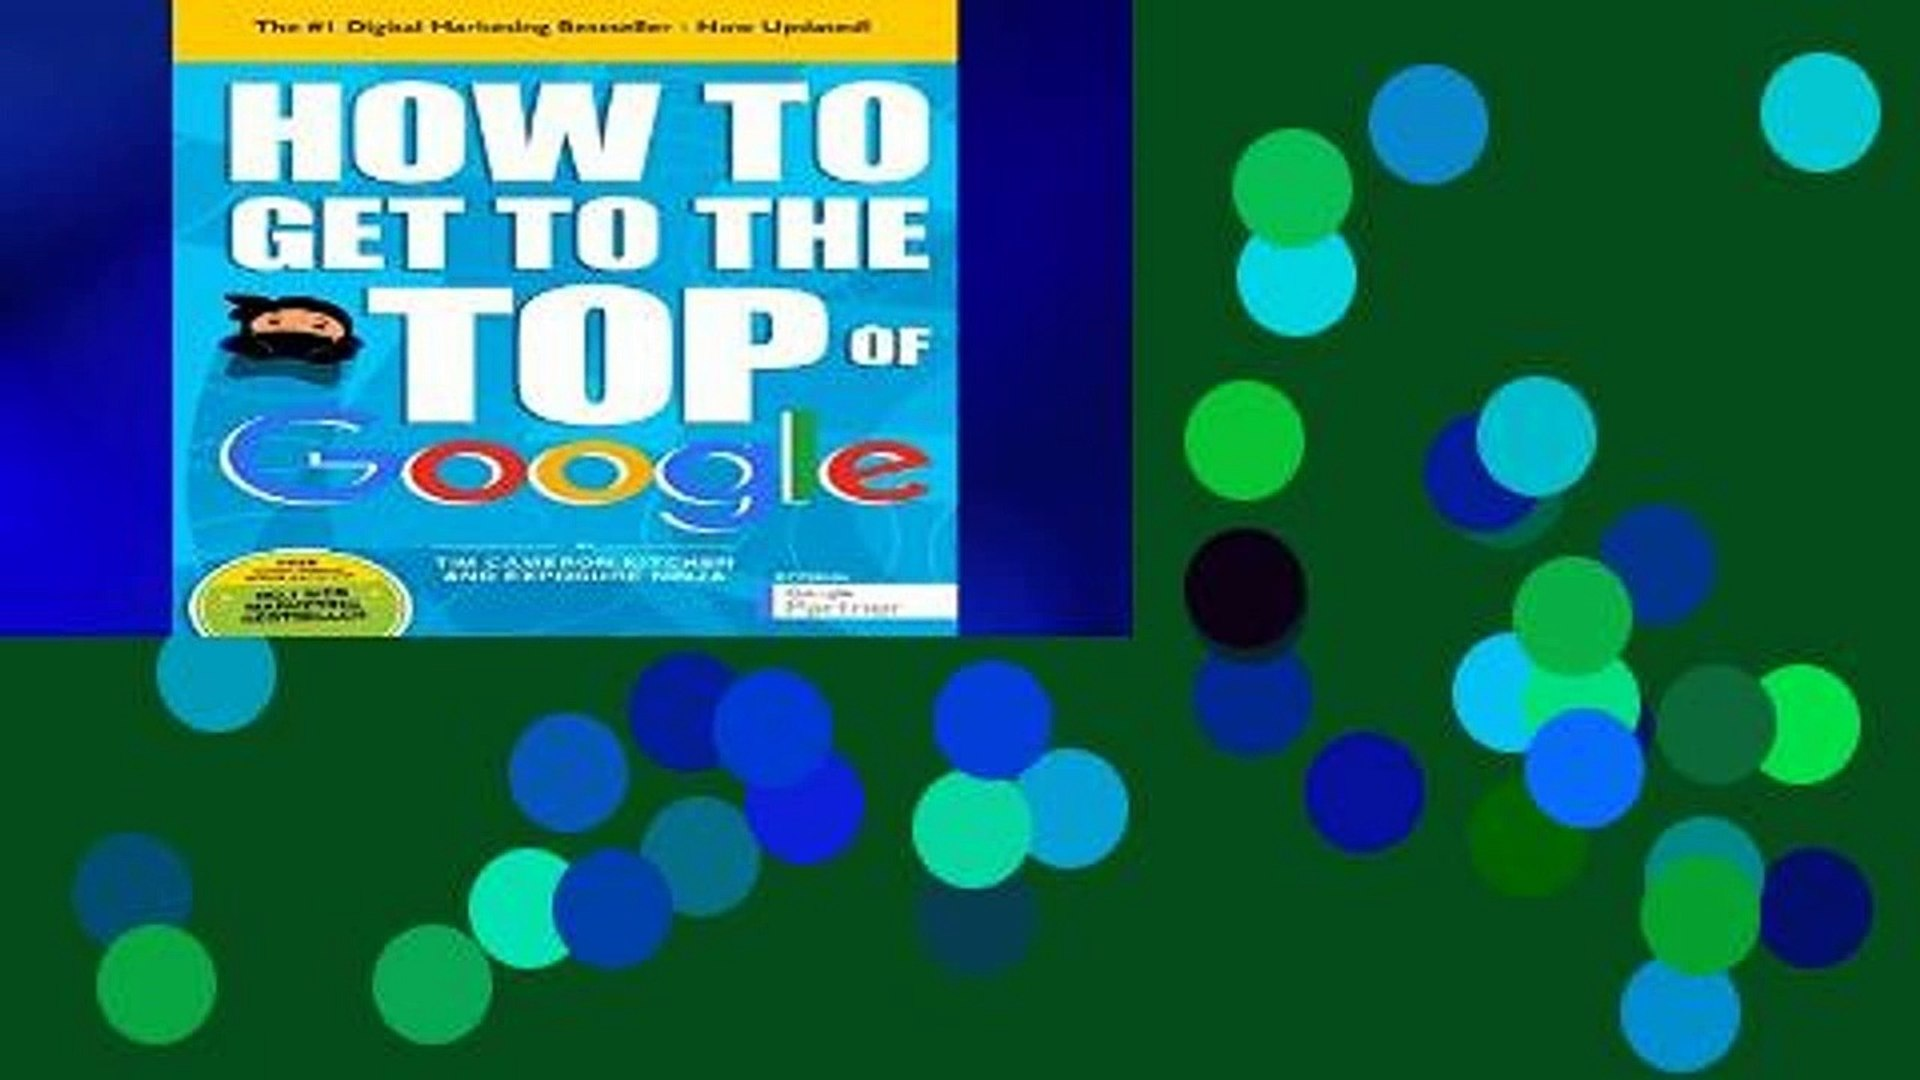 Best E-book How To Get To The Top Of Google: The Plain English Guide To SEO free of charge